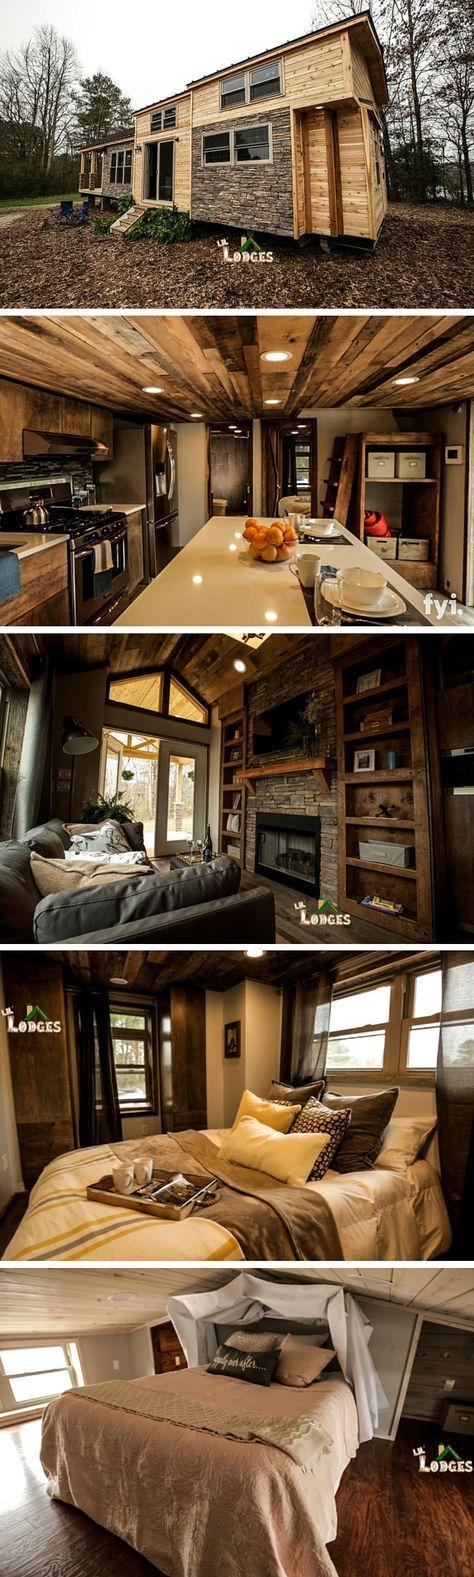 A custom-made little residence on wheels from Tiny Living Homes. This 310 sq feet residence has 2 loft spaces!